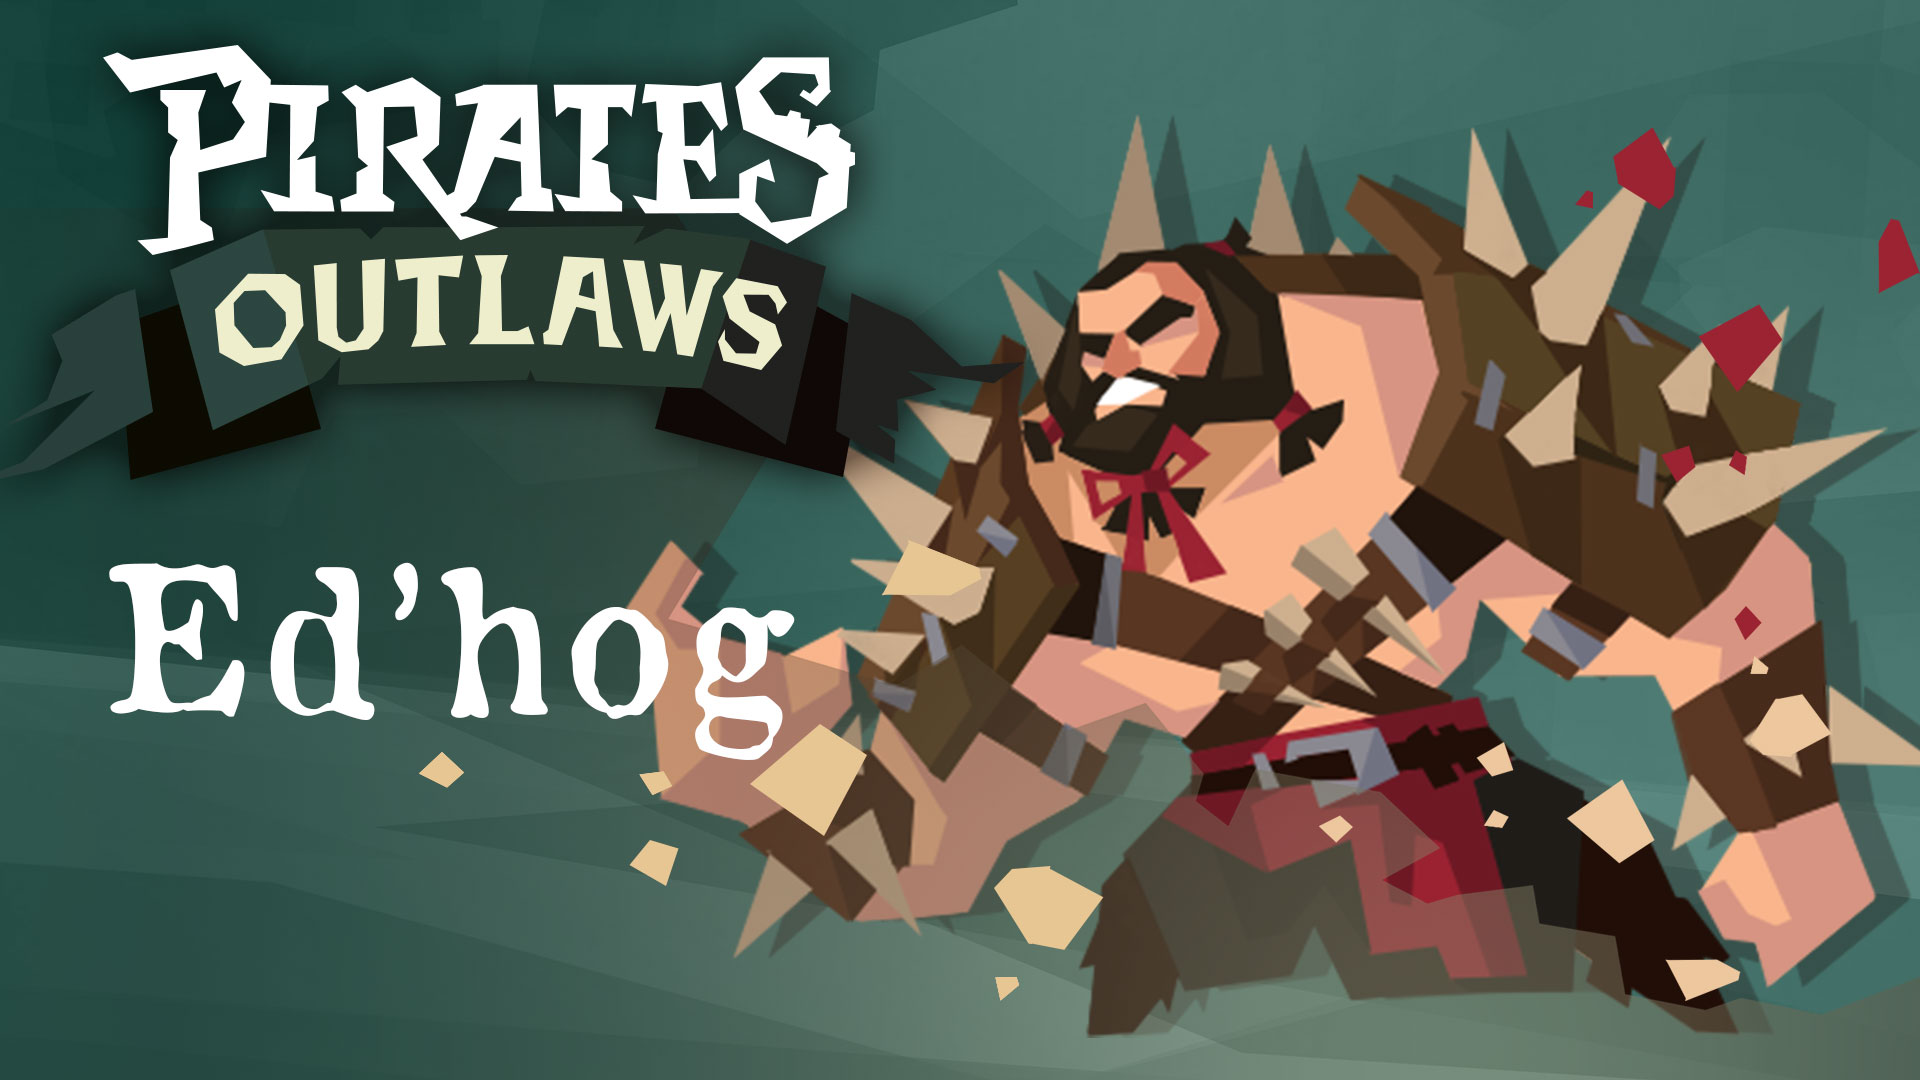 boss battles - Gameplay videos. Learn how to defeat Bosses in Pirates Outlaws on our official YouTube channel.